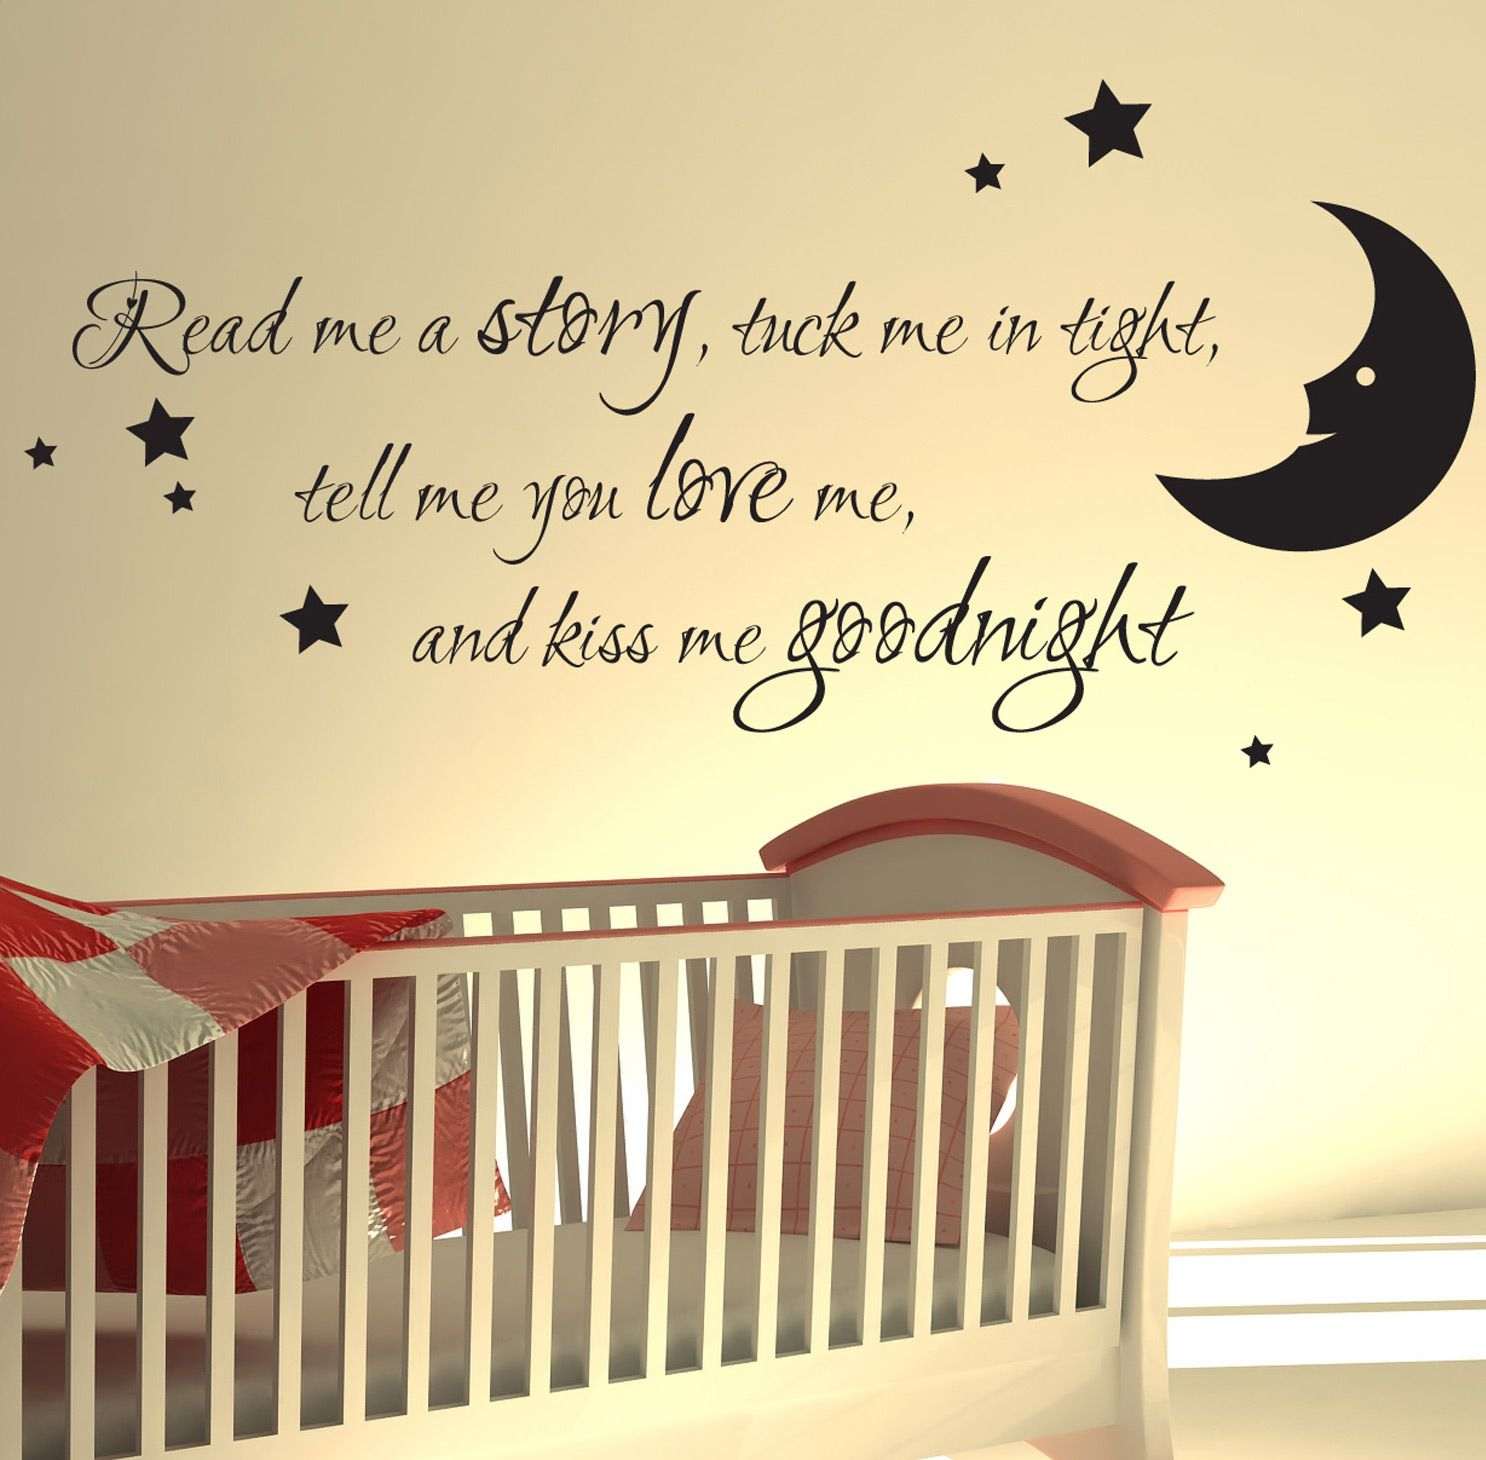 Details About Nursery Wall Sticker Read Me A Story Kids Art